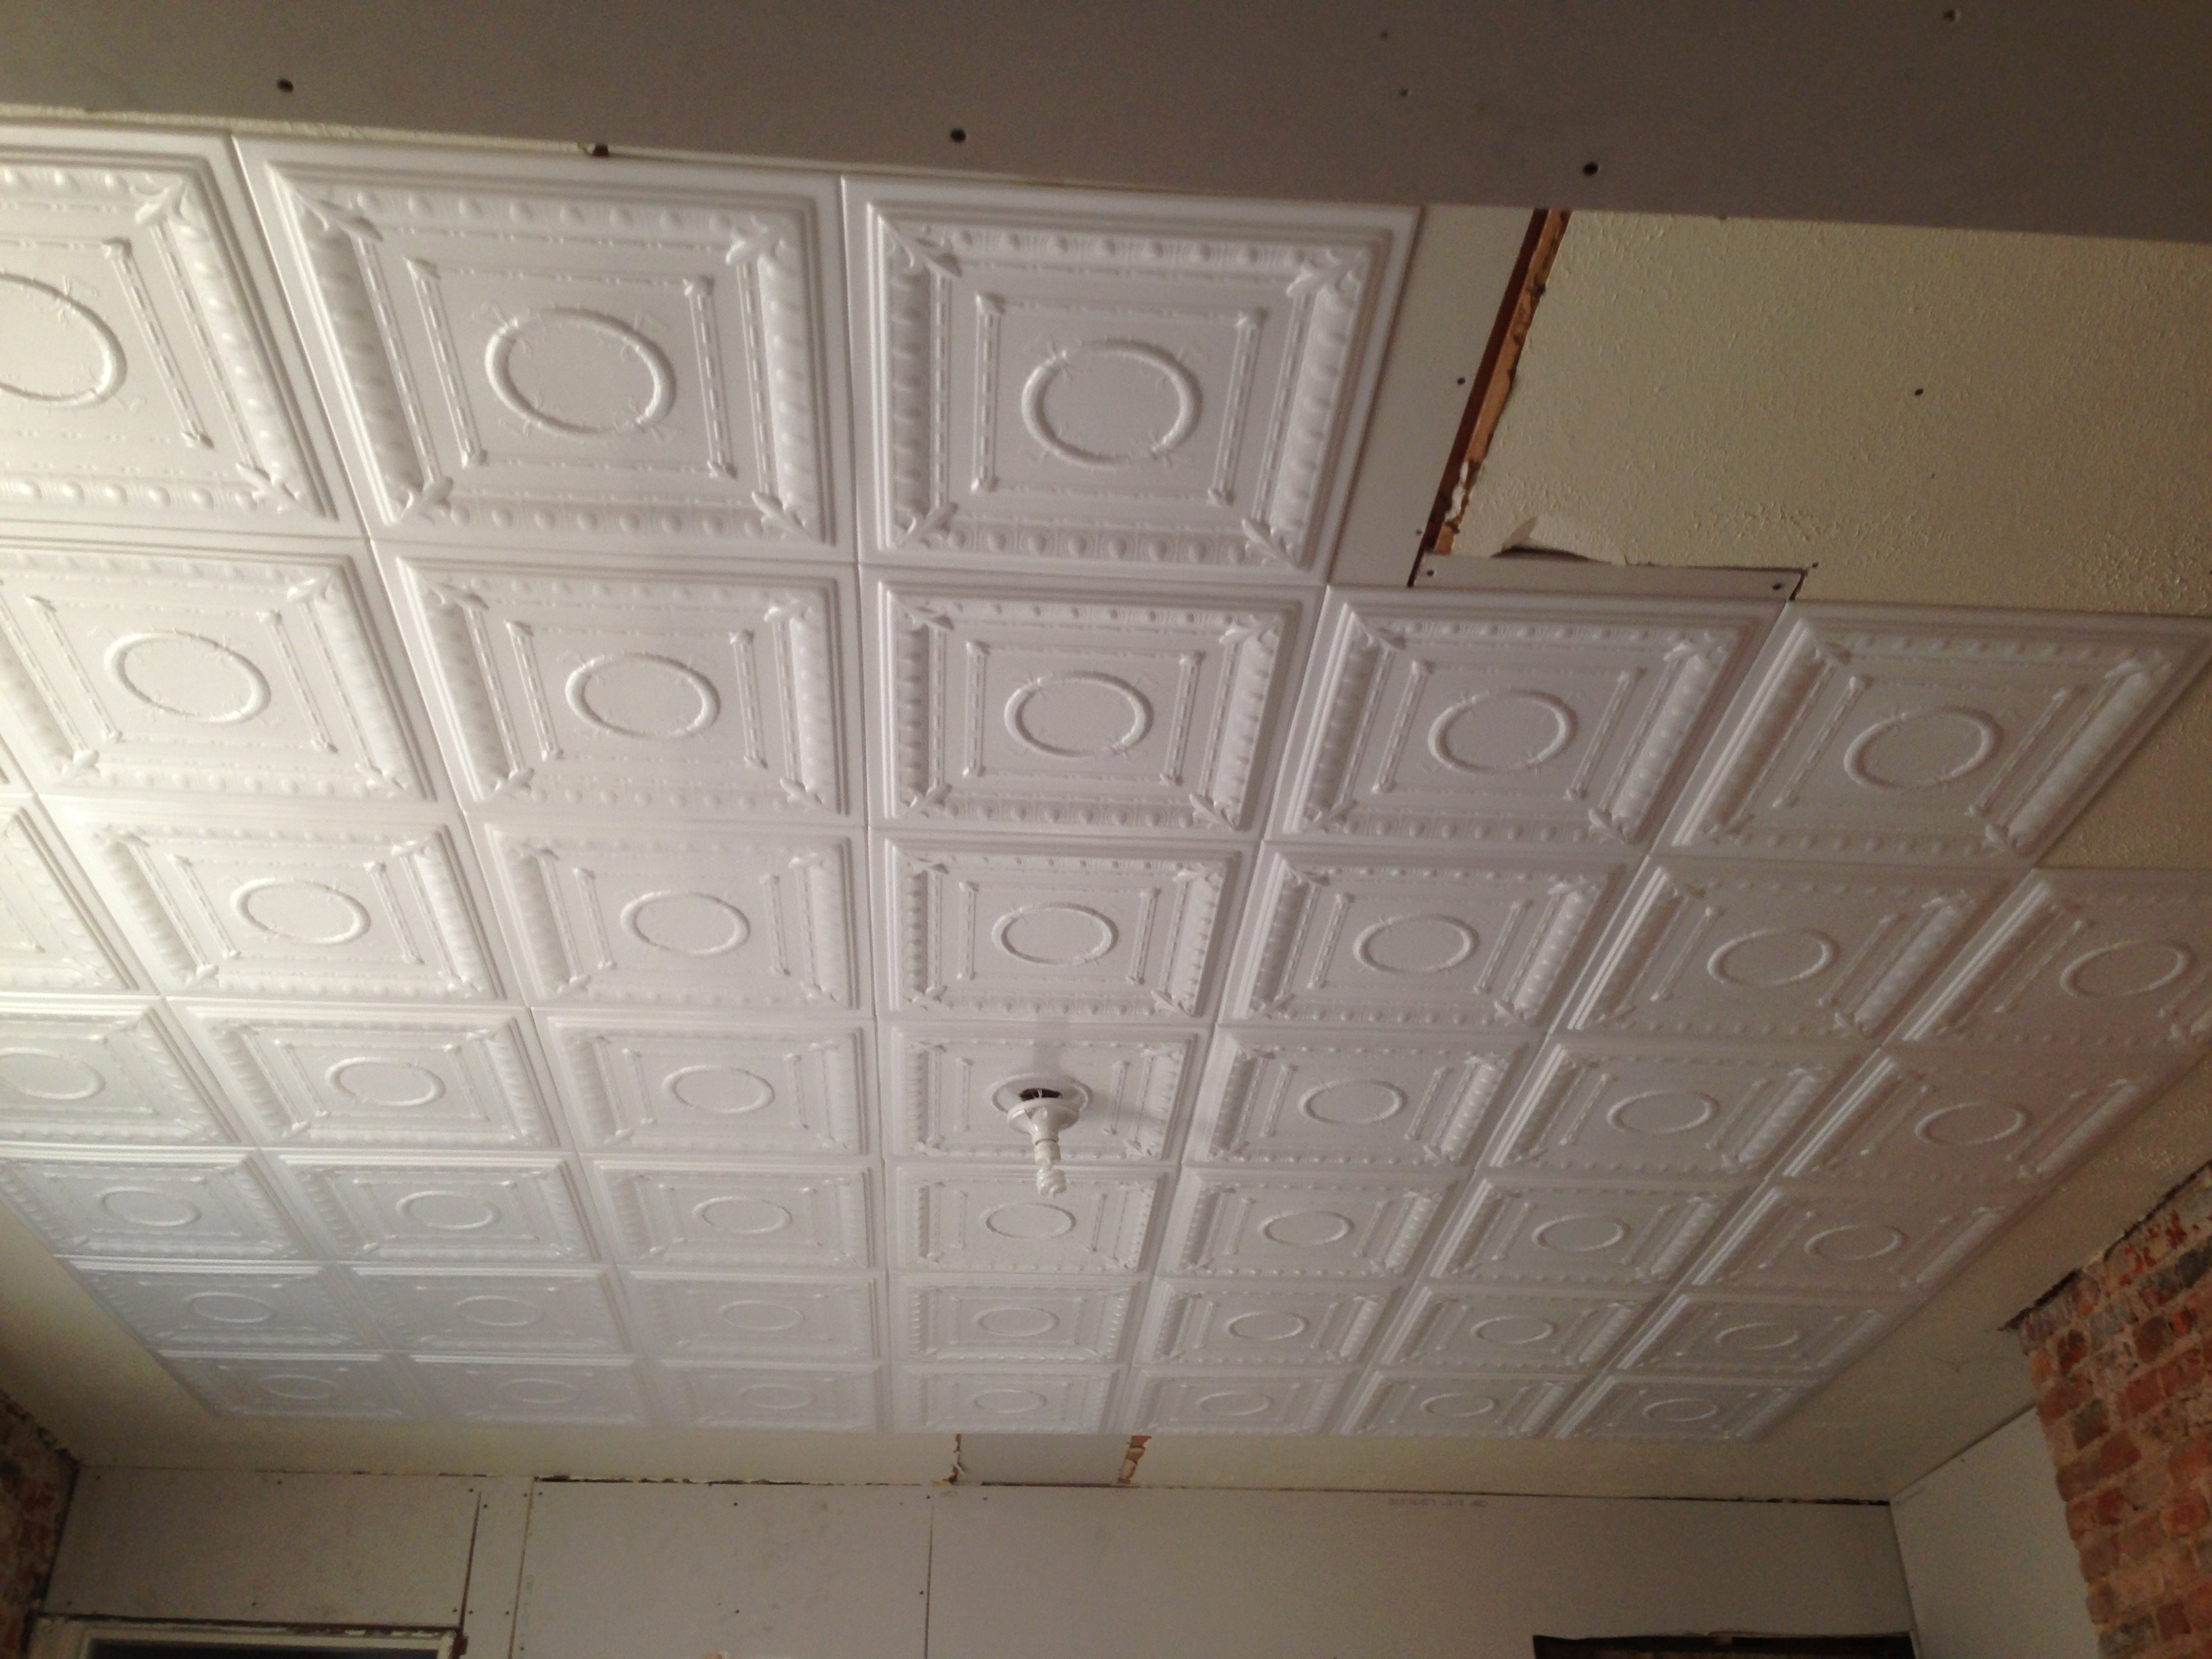 blog projects crown tiles molding s my lorton tile ceiling virginia clients polyurethane inc ceilings decorative page category